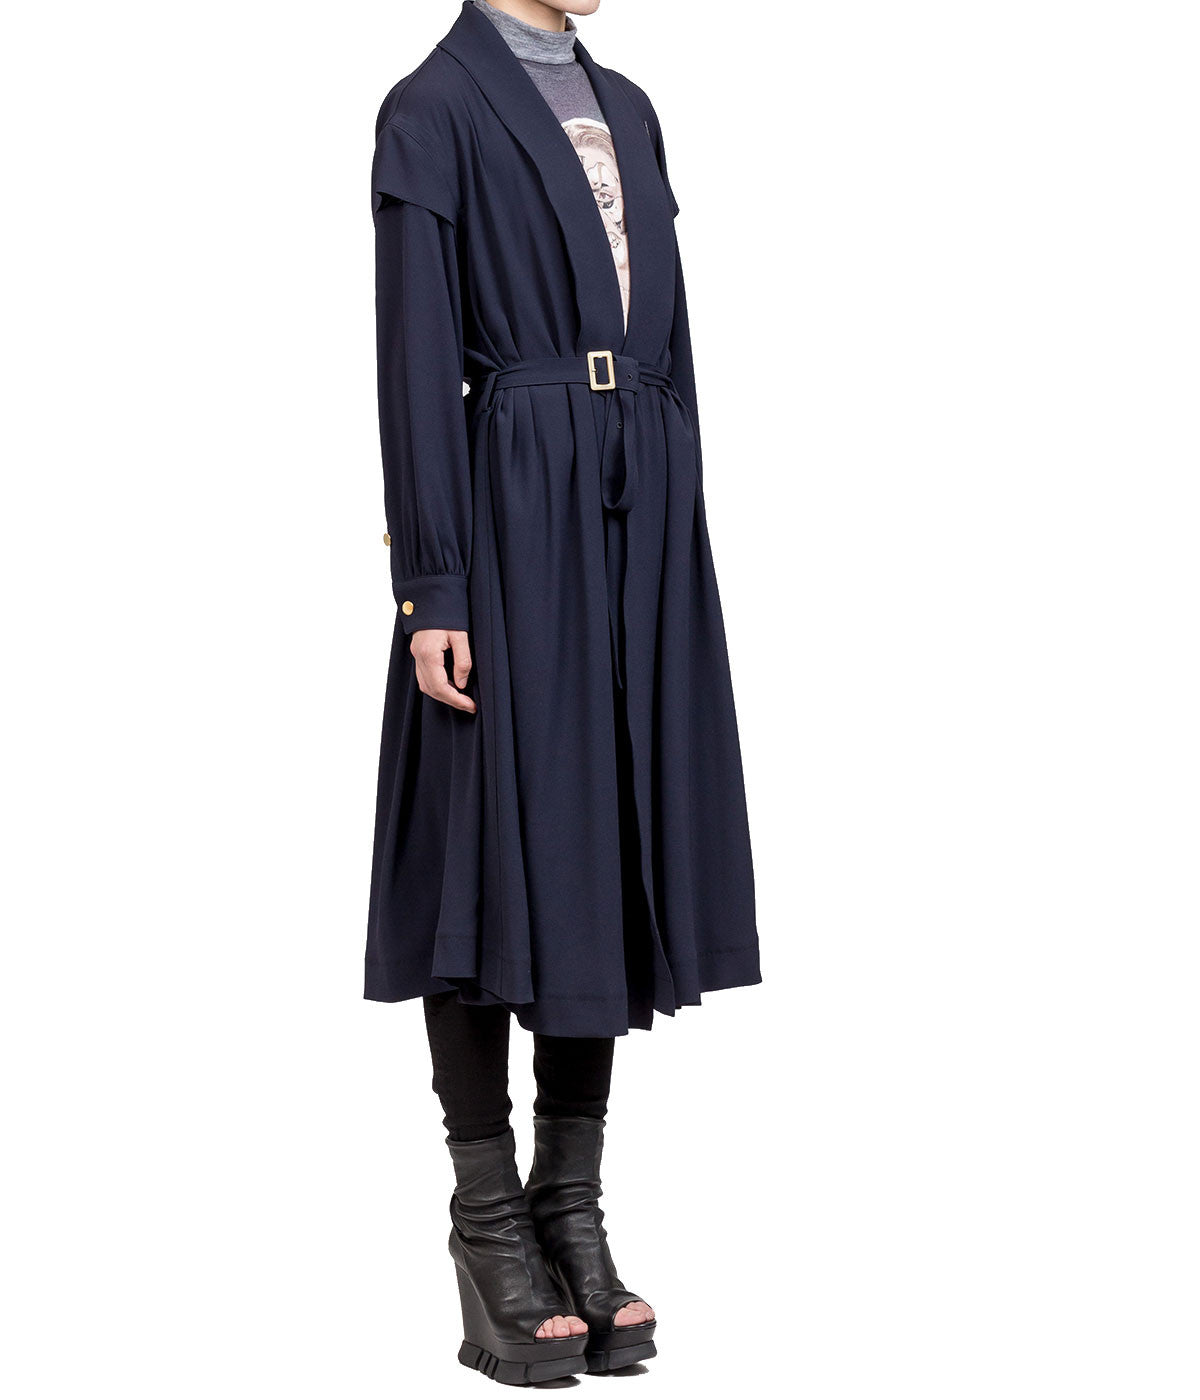 Navy Embroidered Detail Belted Coat